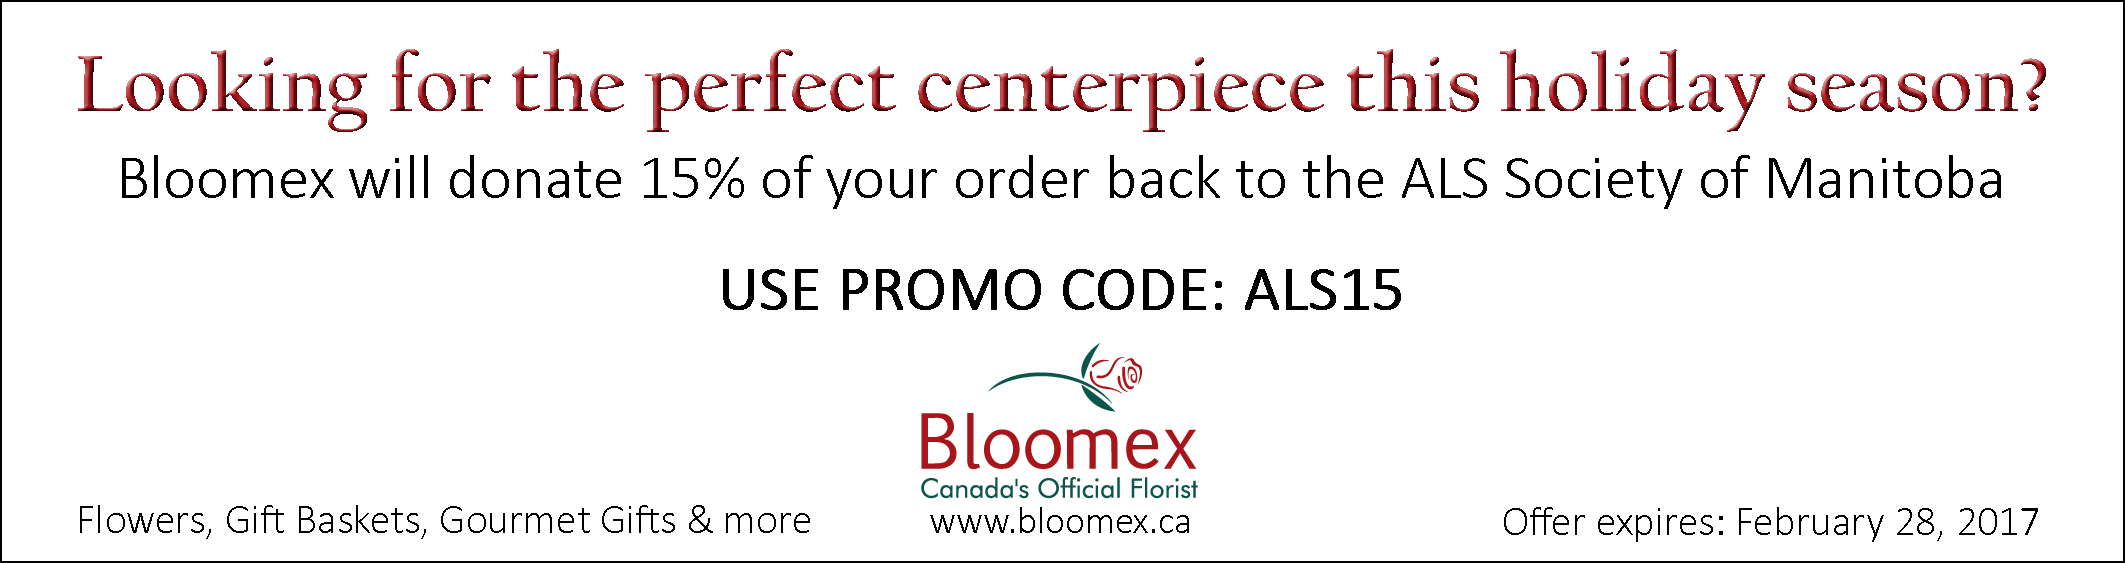 Coupons bloomex